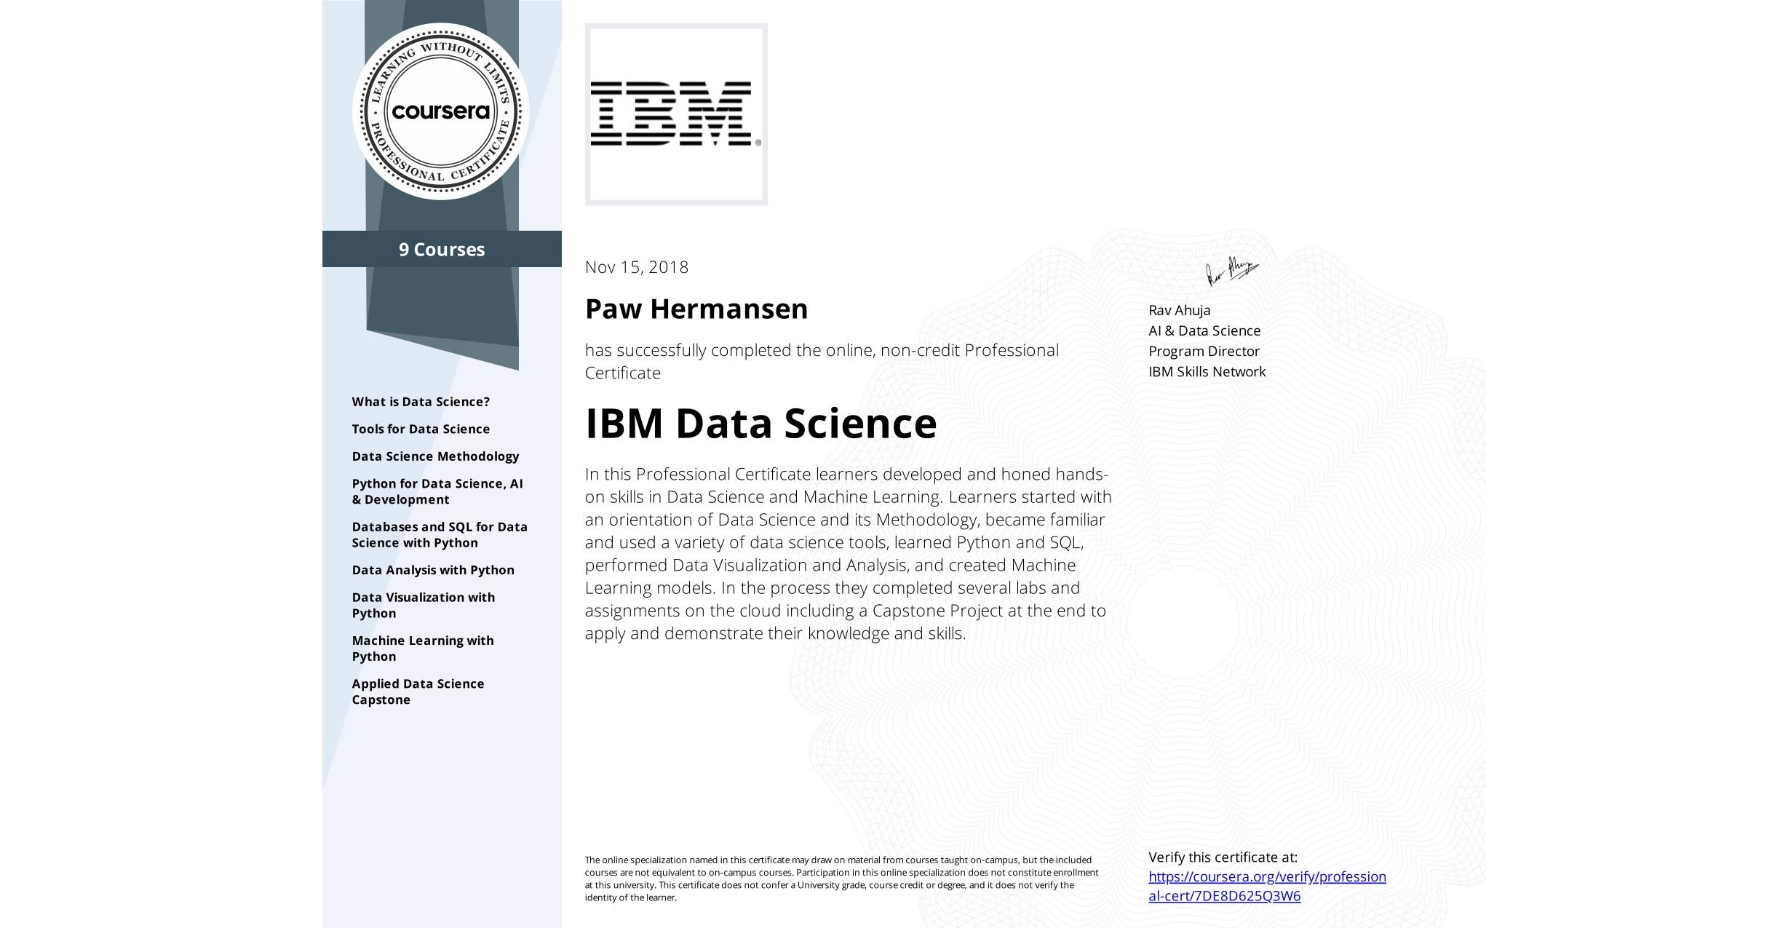 View certificate for Paw Hermansen, IBM Data Science, offered through Coursera. In this Professional Certificate learners developed and honed hands-on skills in Data Science and Machine Learning. Learners started with an orientation of Data Science and its Methodology, became familiar and used a variety of data science tools, learned Python and SQL, performed Data Visualization and Analysis, and created Machine Learning models.  In the process they completed several labs and assignments on the cloud including a Capstone Project at the end to apply and demonstrate their knowledge and skills.